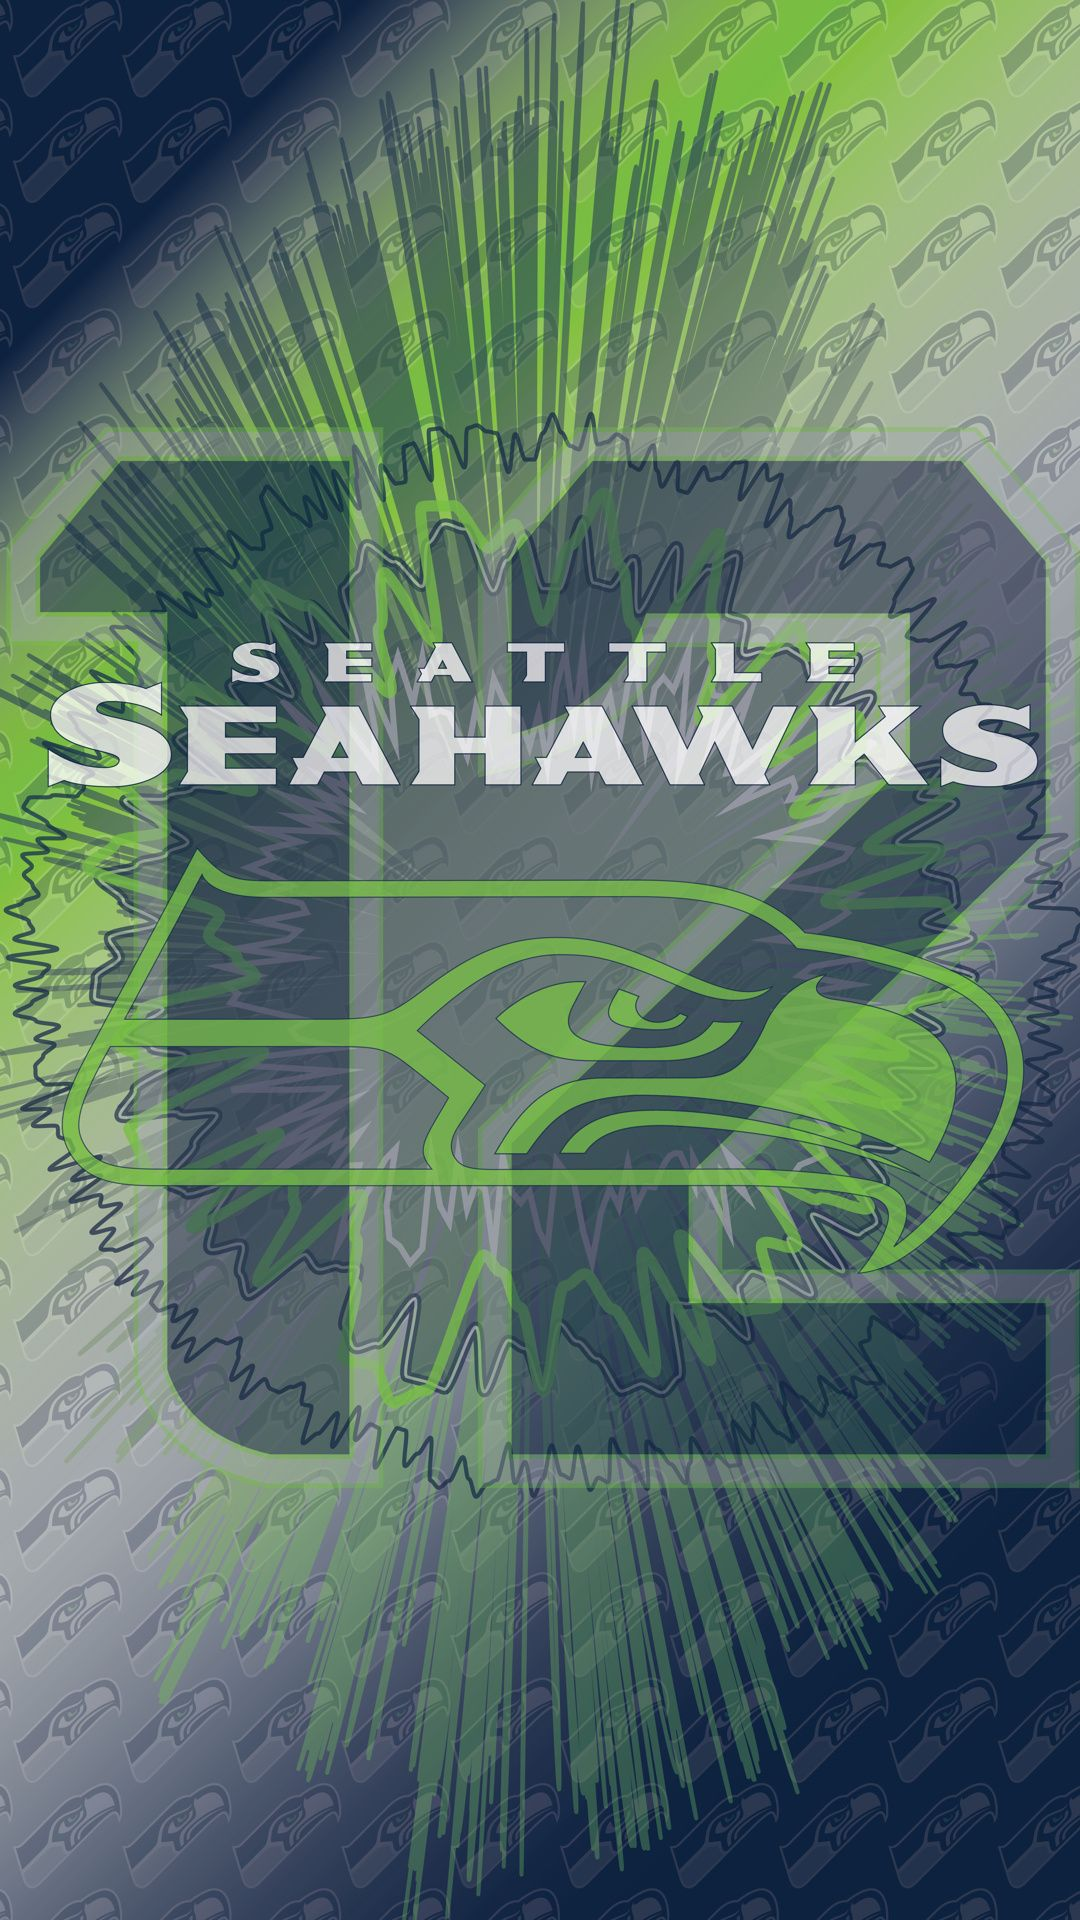 My phone wallpaper collection Seahawks, Seattle seahawks